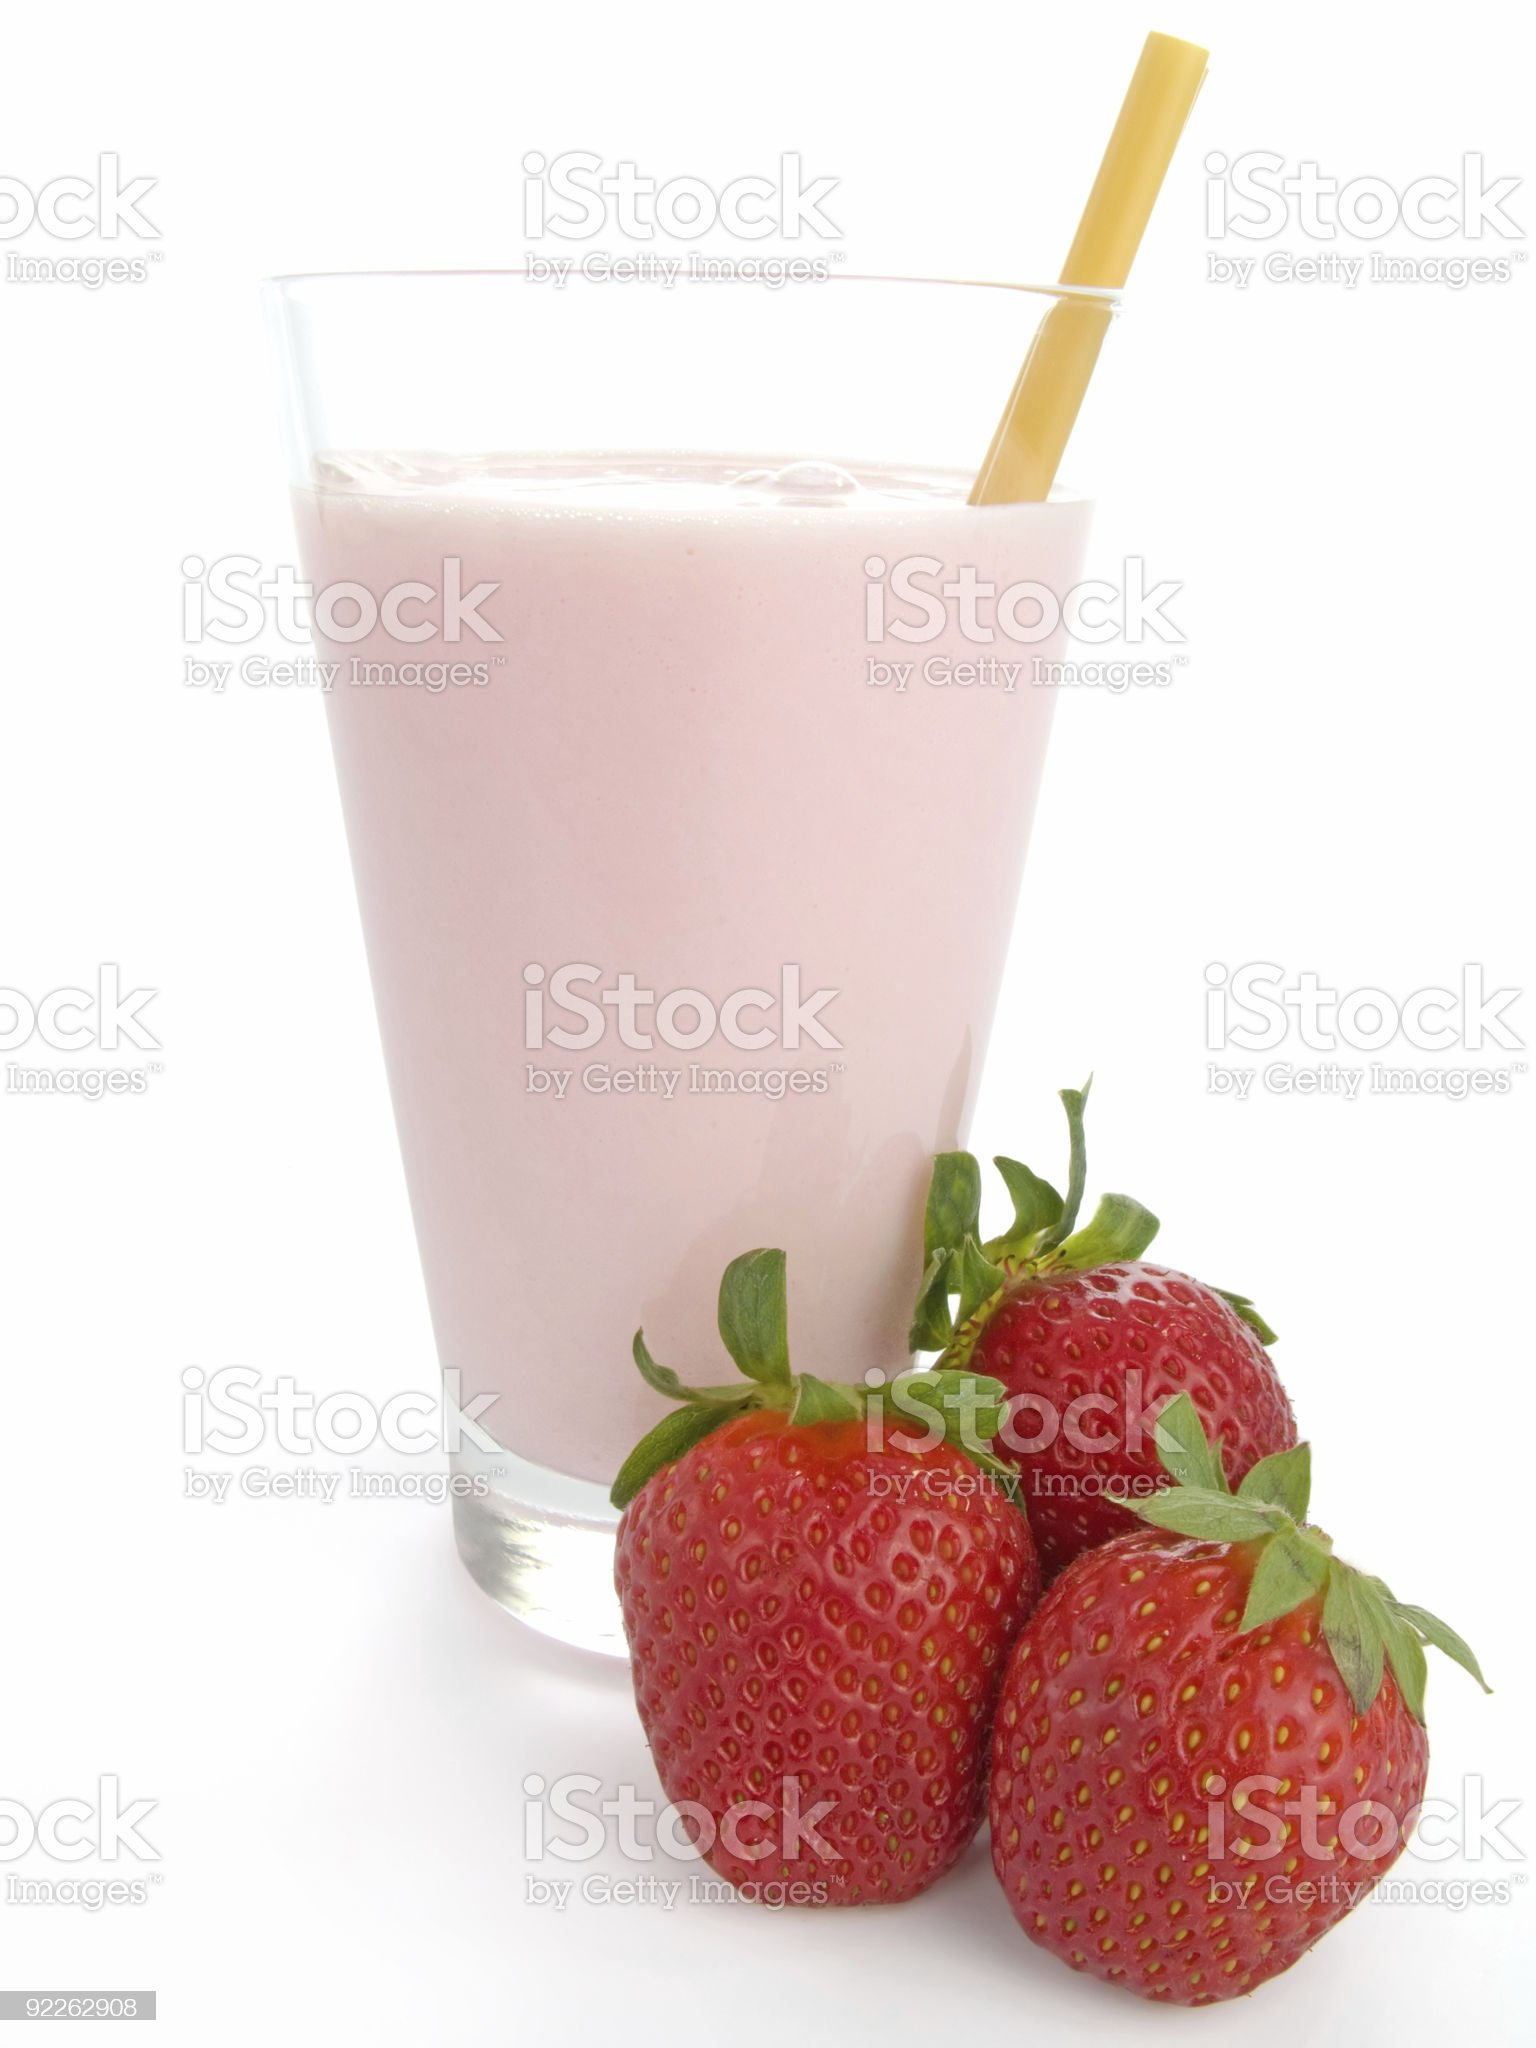 Smoothie made with strawberries royalty-free stock photo